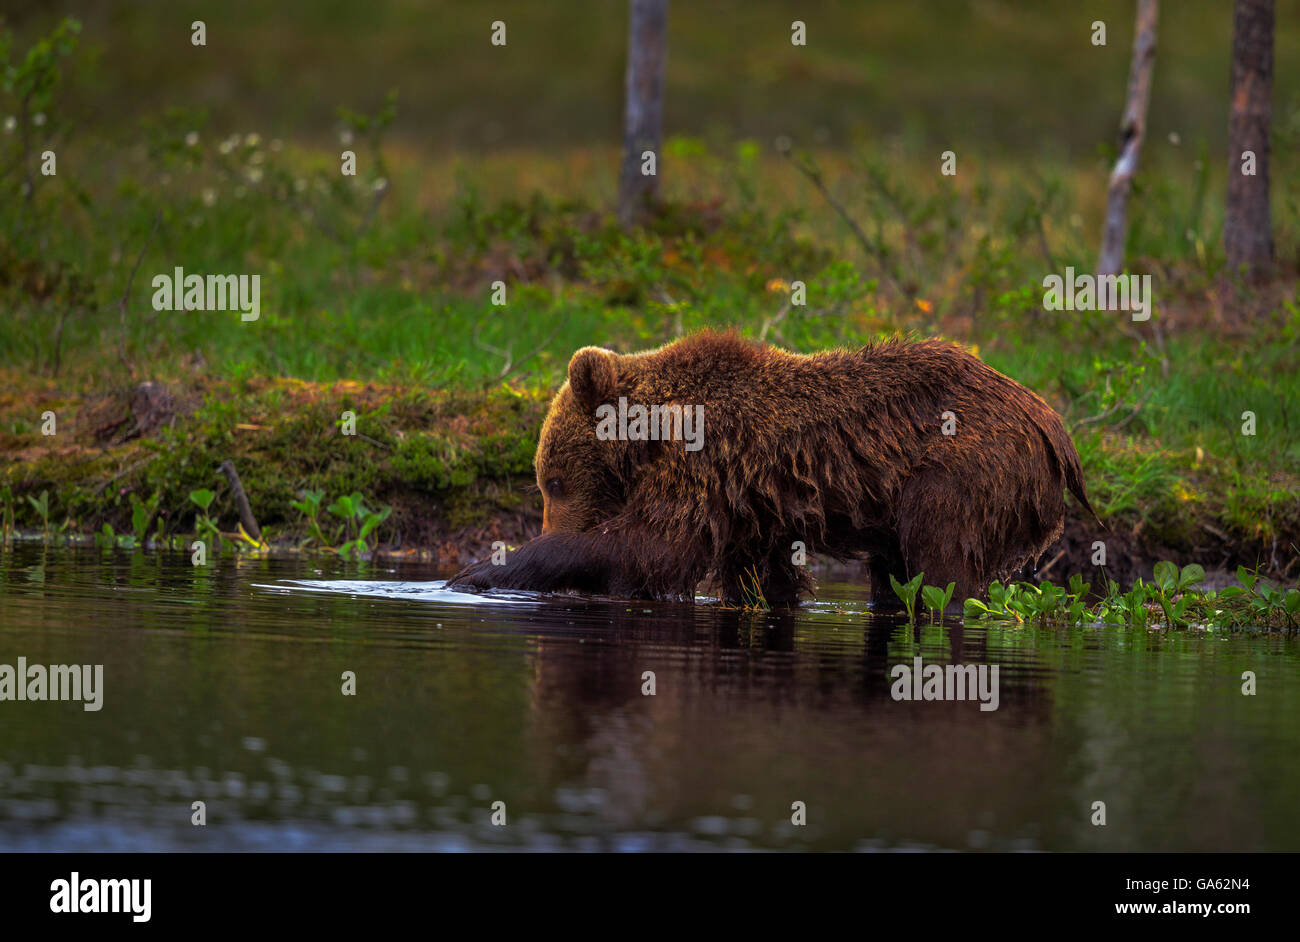 A young brown bear fishing in a lake in northern Finland. - Stock Image